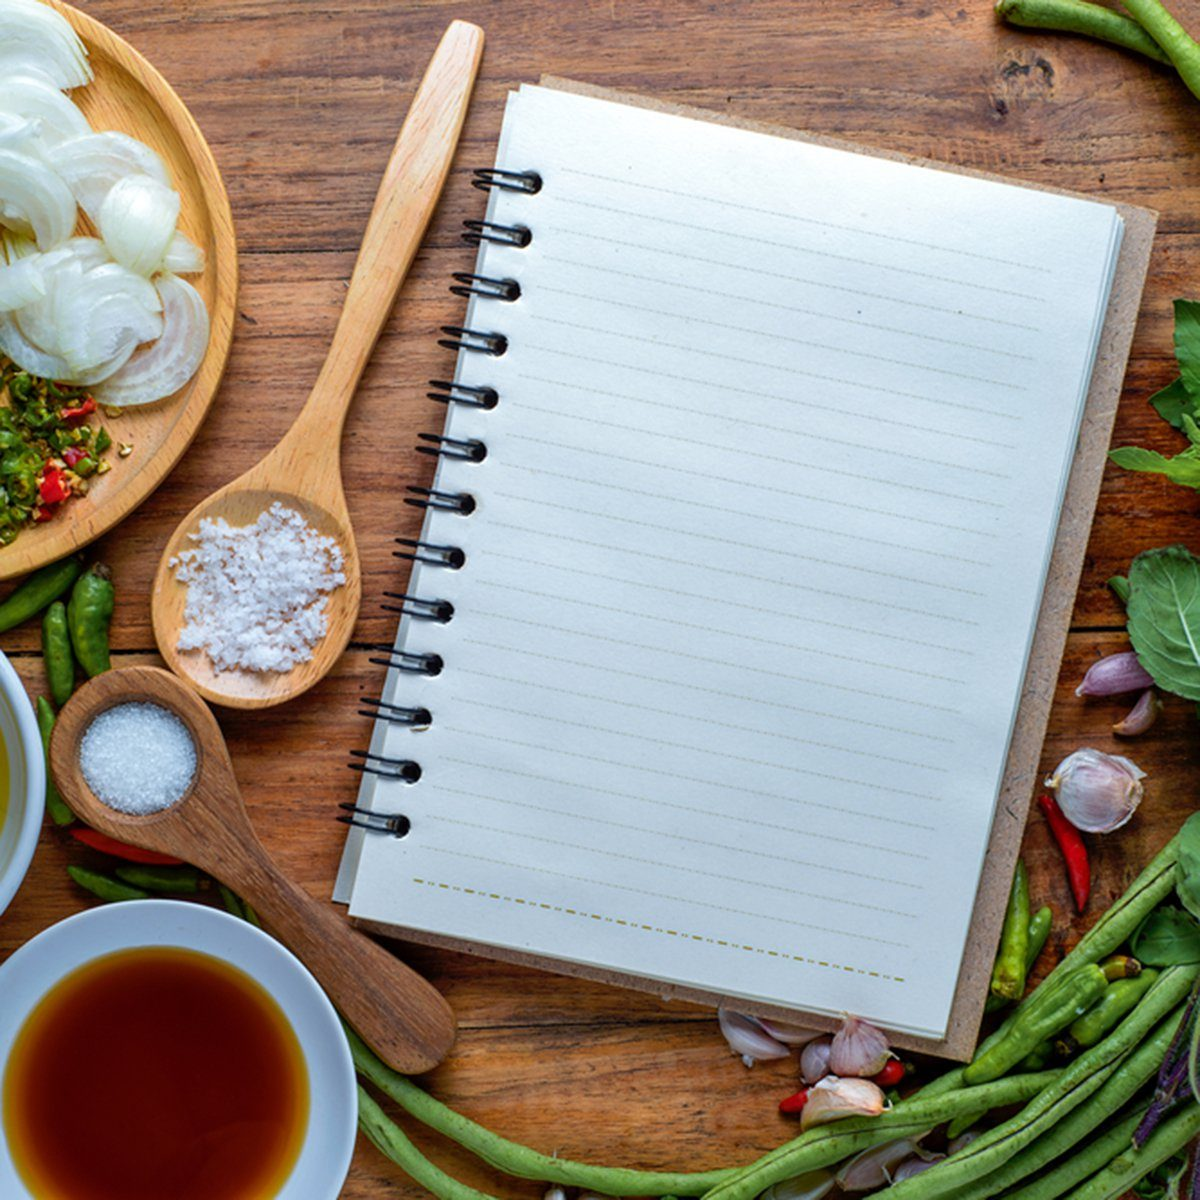 recipe book with fresh herbs south asia and spices on wooden background